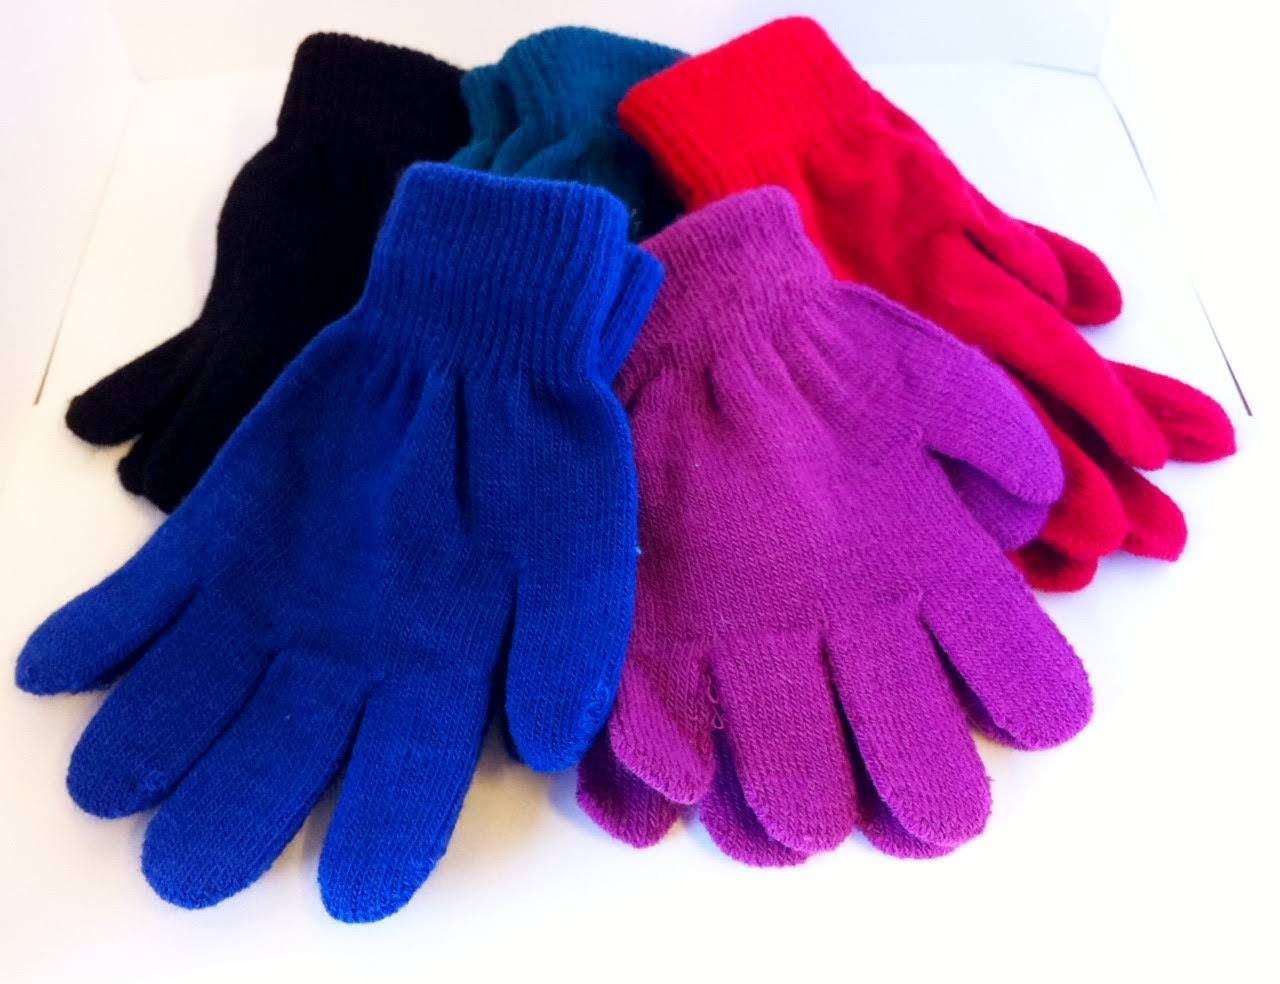 RJM Children's Black Thermal Magic Gloves for The Winter 1 Pair